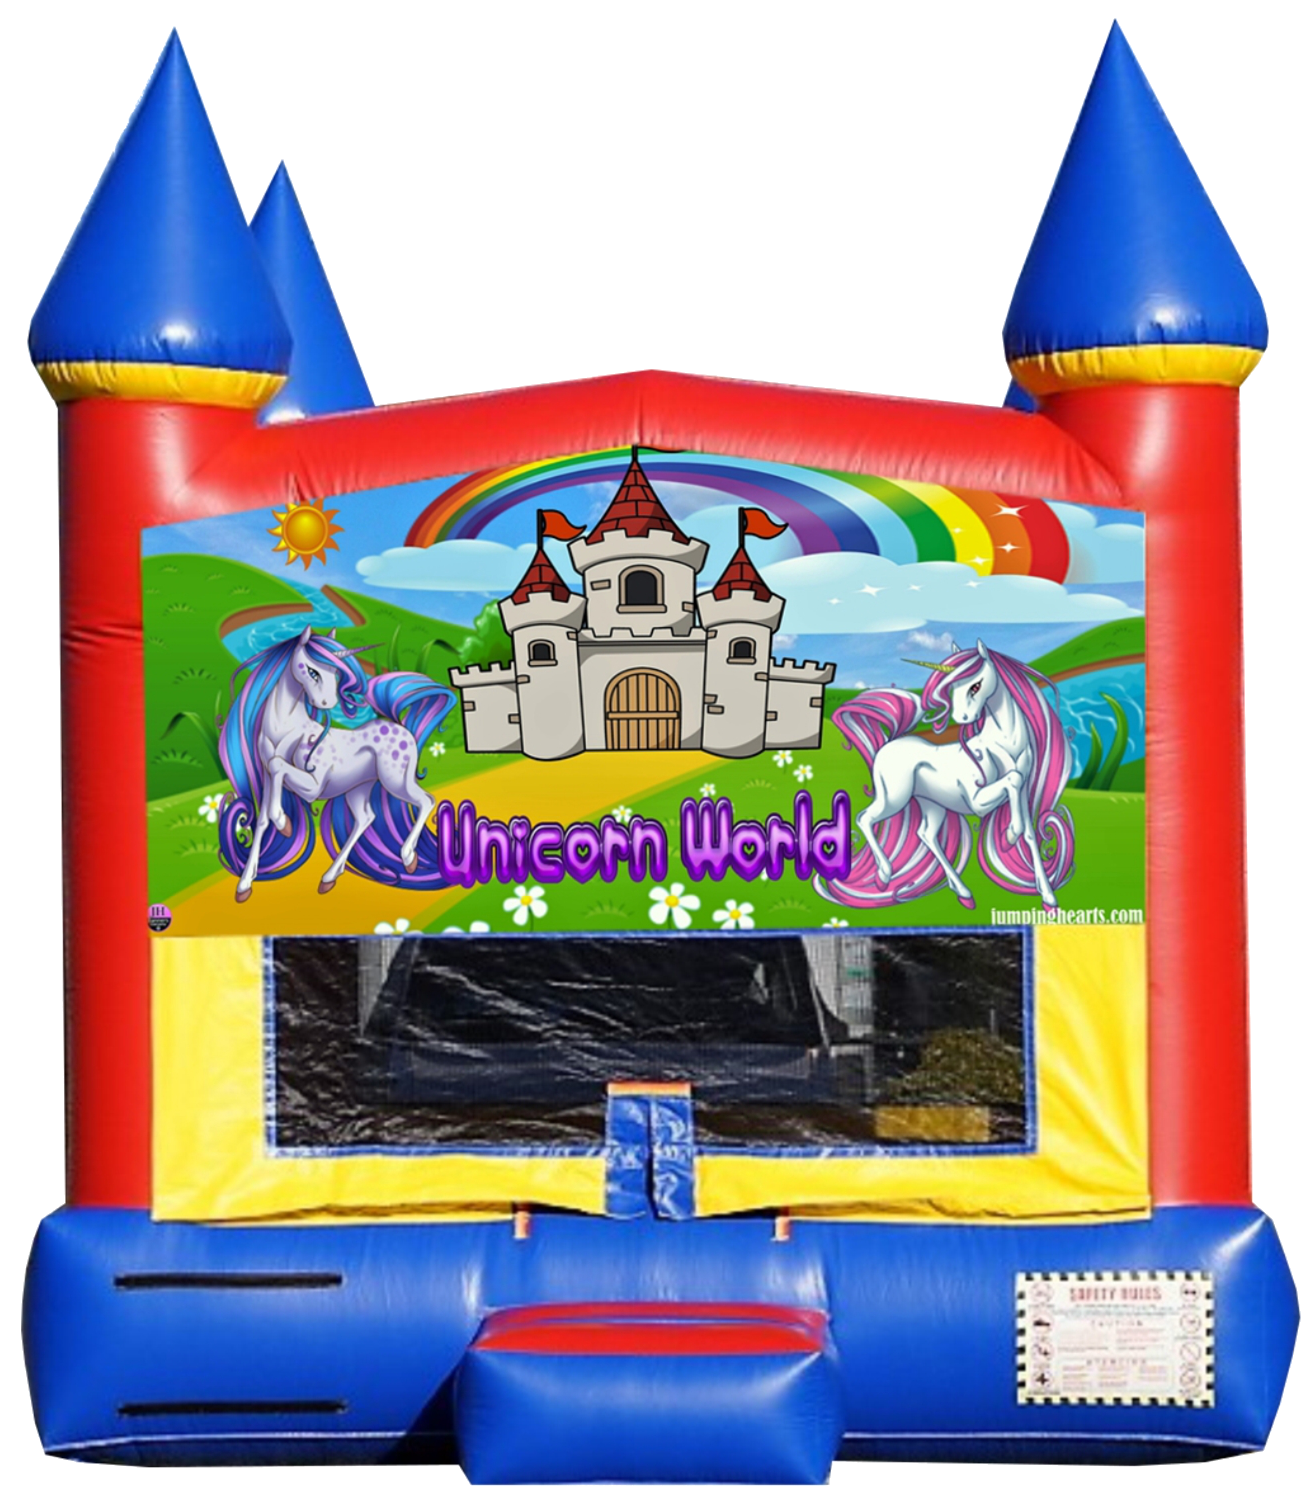 unicorn bounce house Murfreesboro